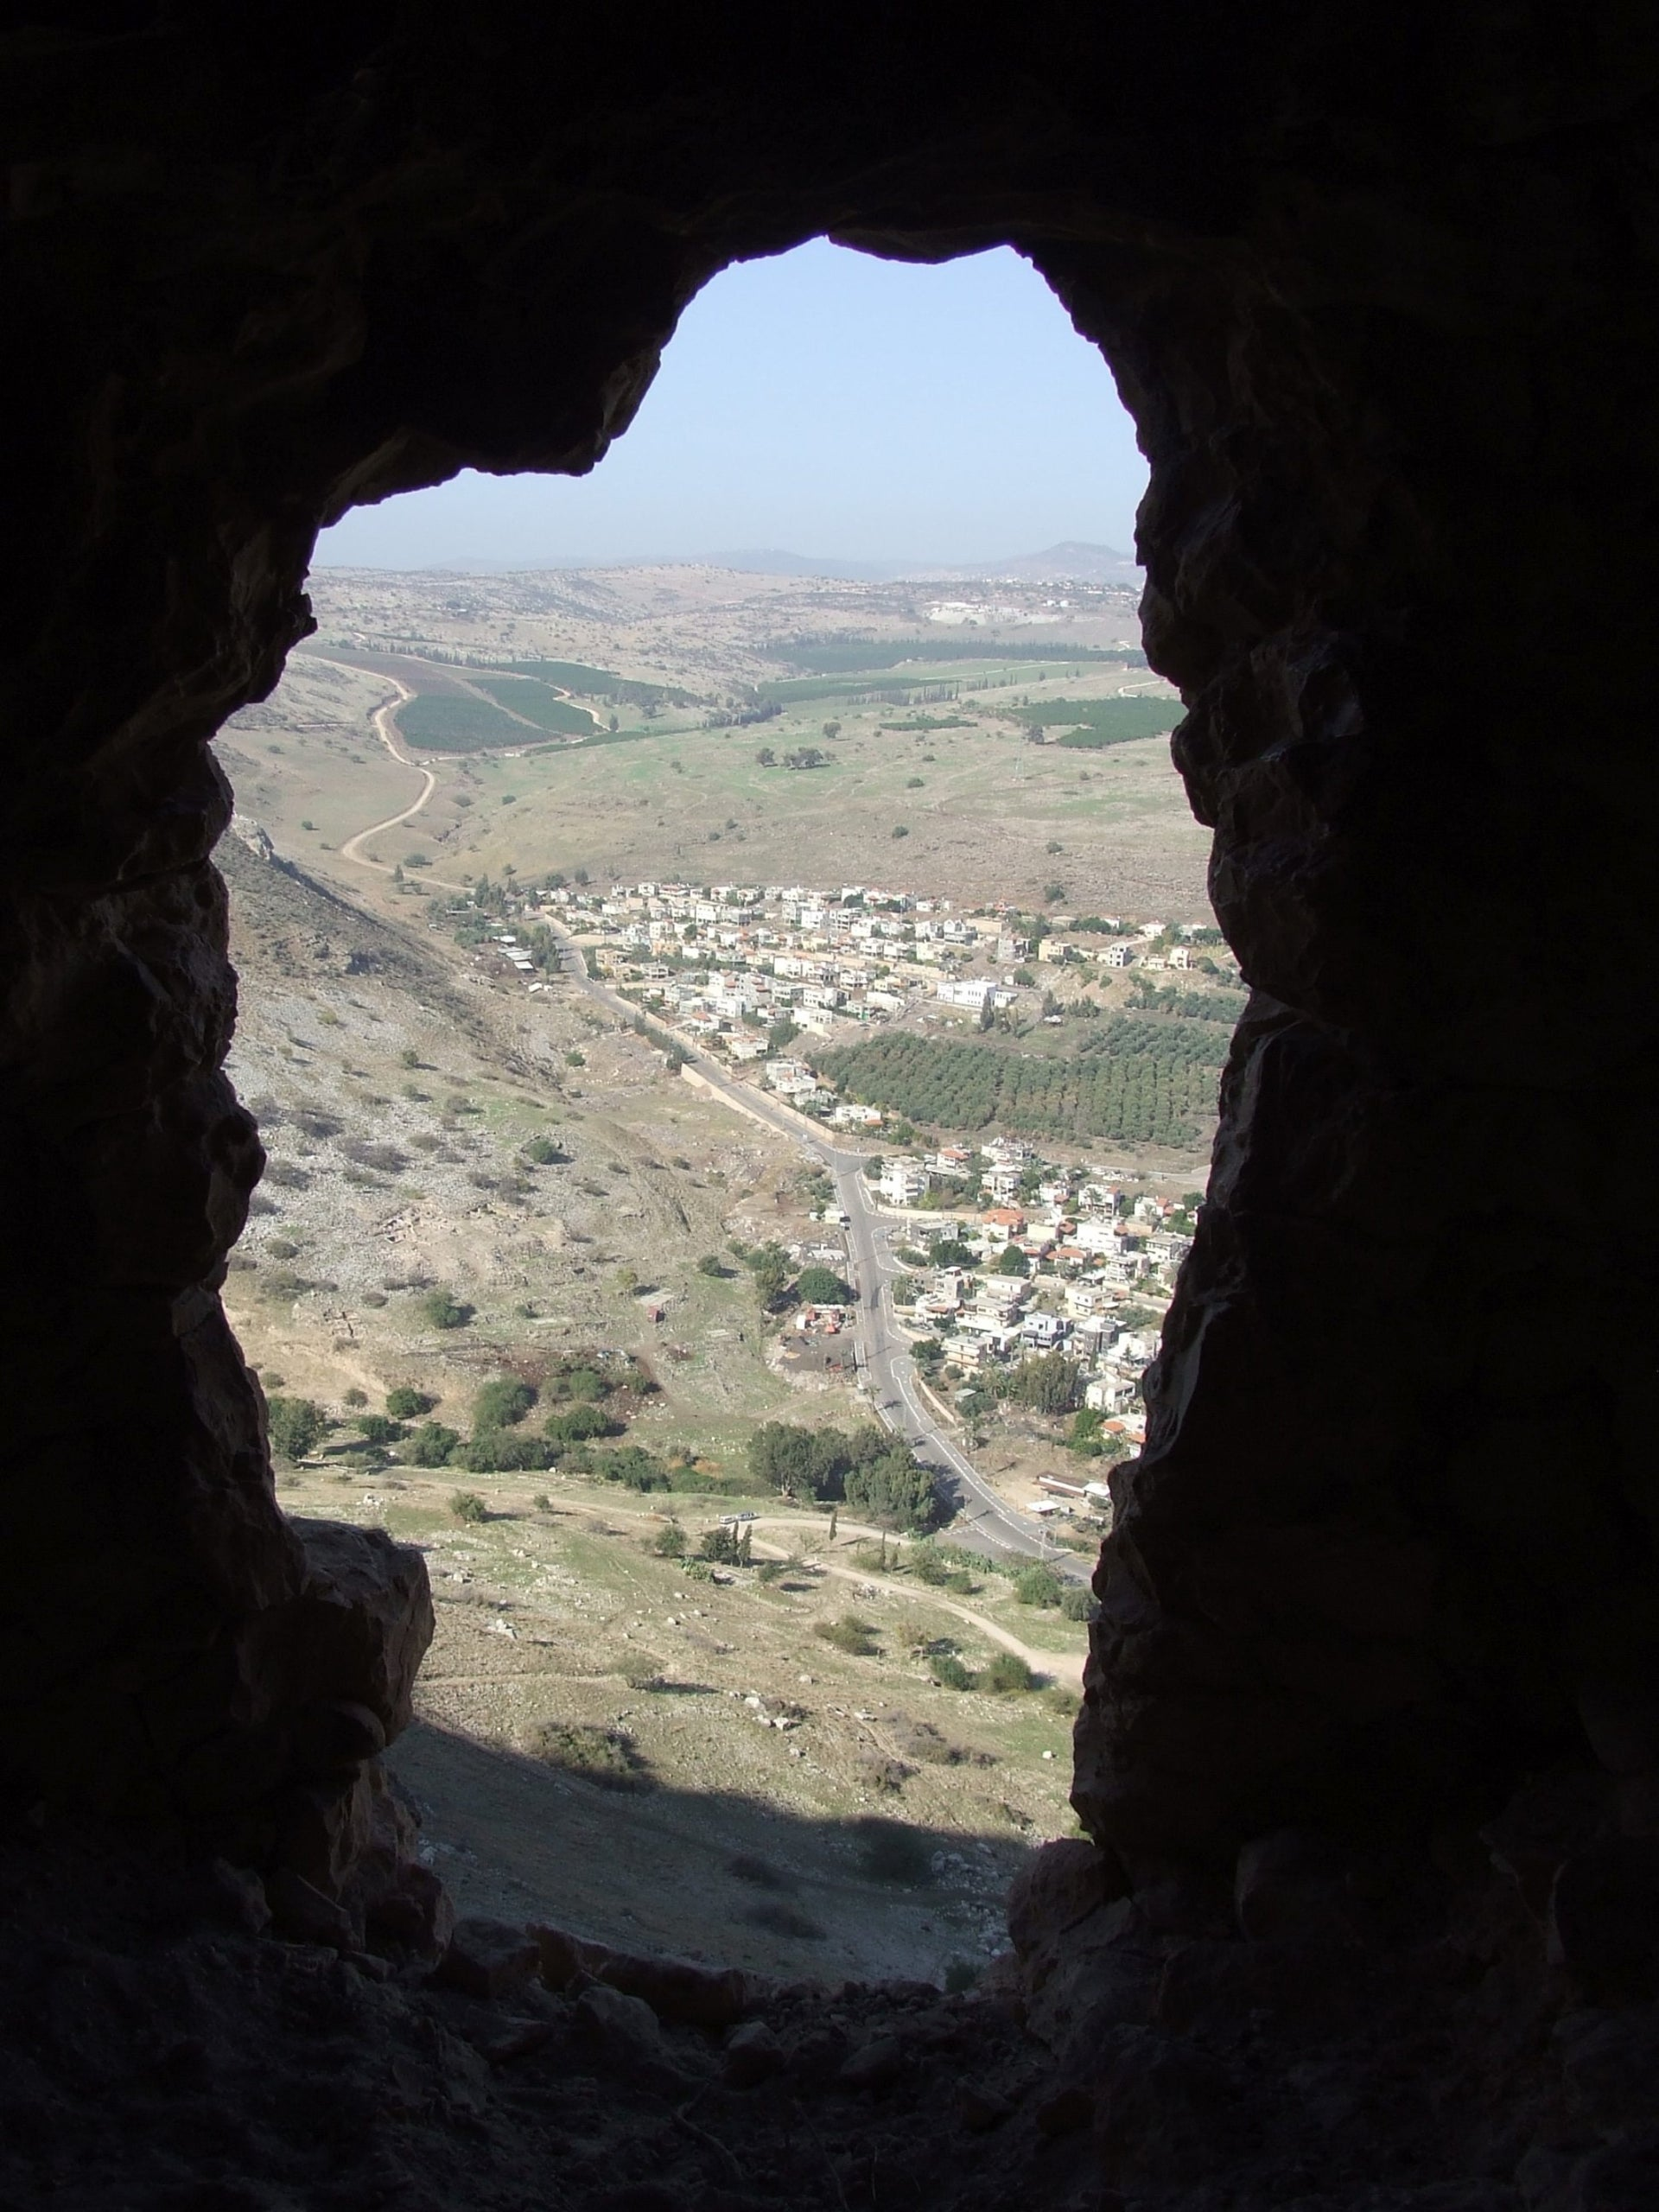 Looking down at the town of Migdal from one of the cliffside caves in which Jewish rebels hid from the Roman forces during the First Jewish War, some 2000 years ago.